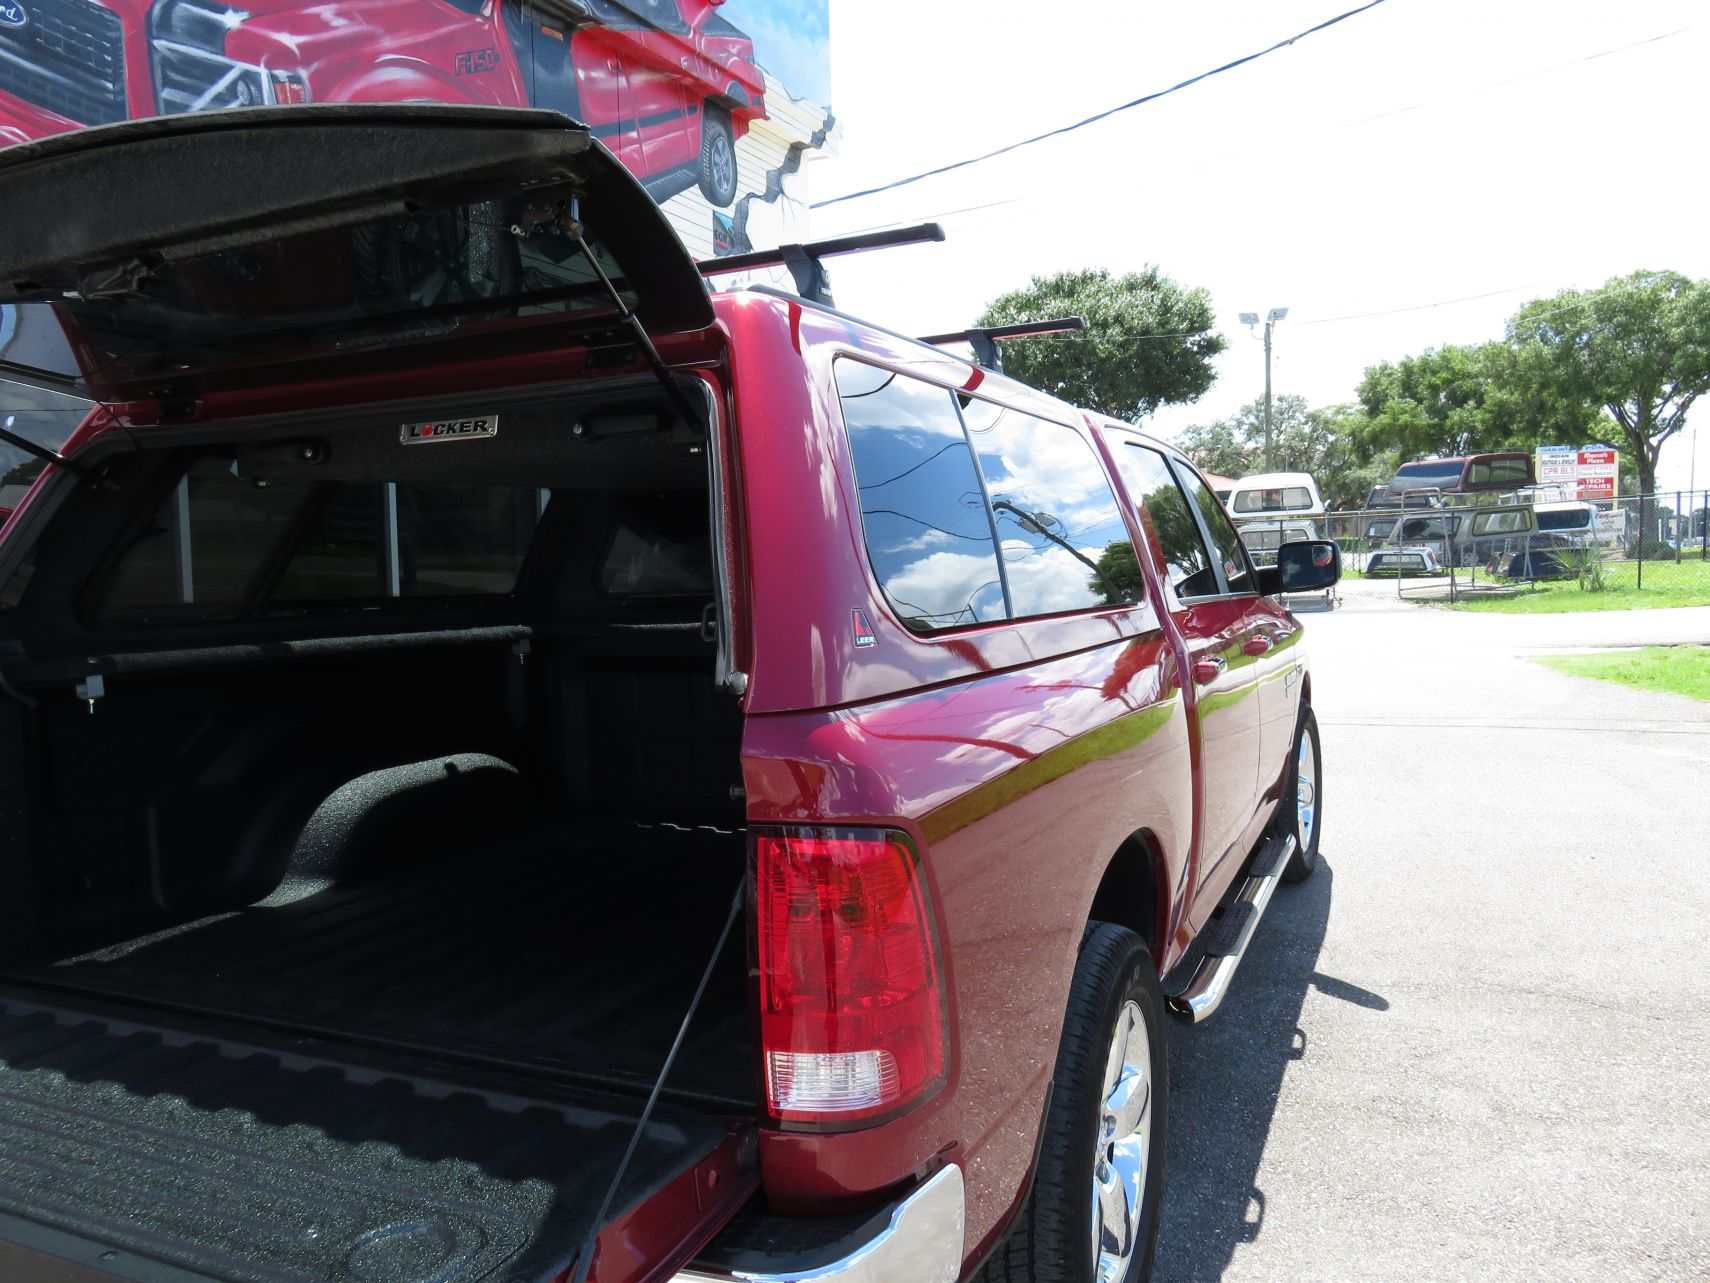 2015 Red Dodge RAM 1500 Leer 100XL, Leer Locker, Nerf Bars, hitch by TopperKING in Brandon, FL 813-689-2449 or Clearwater, FL 727-530-9066. Call today!